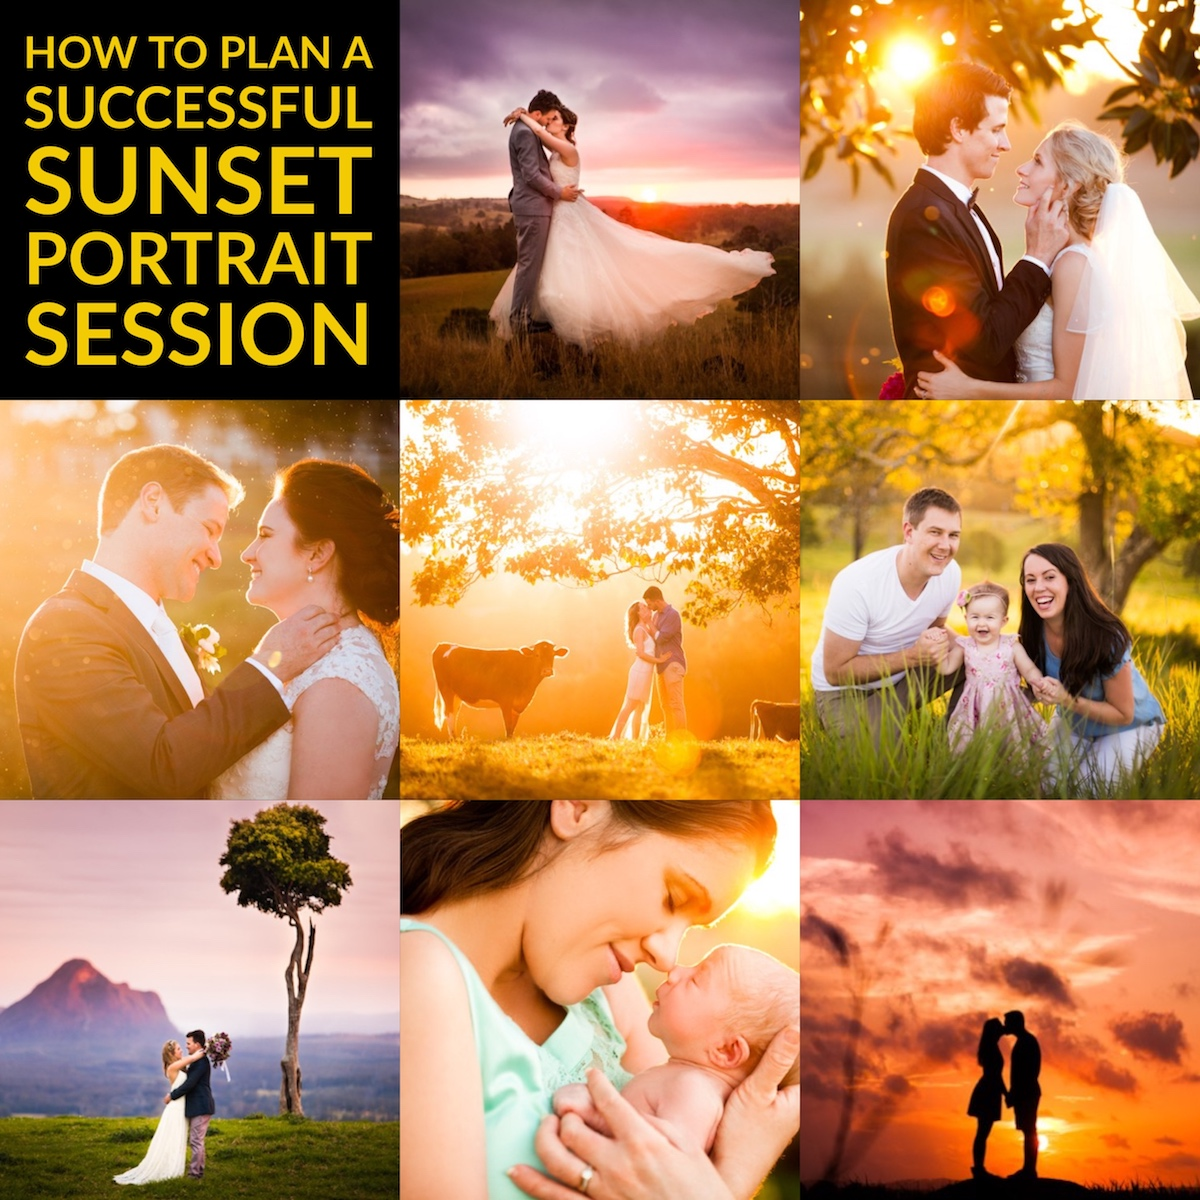 How to Plan a Successful Sunset Portrait Session